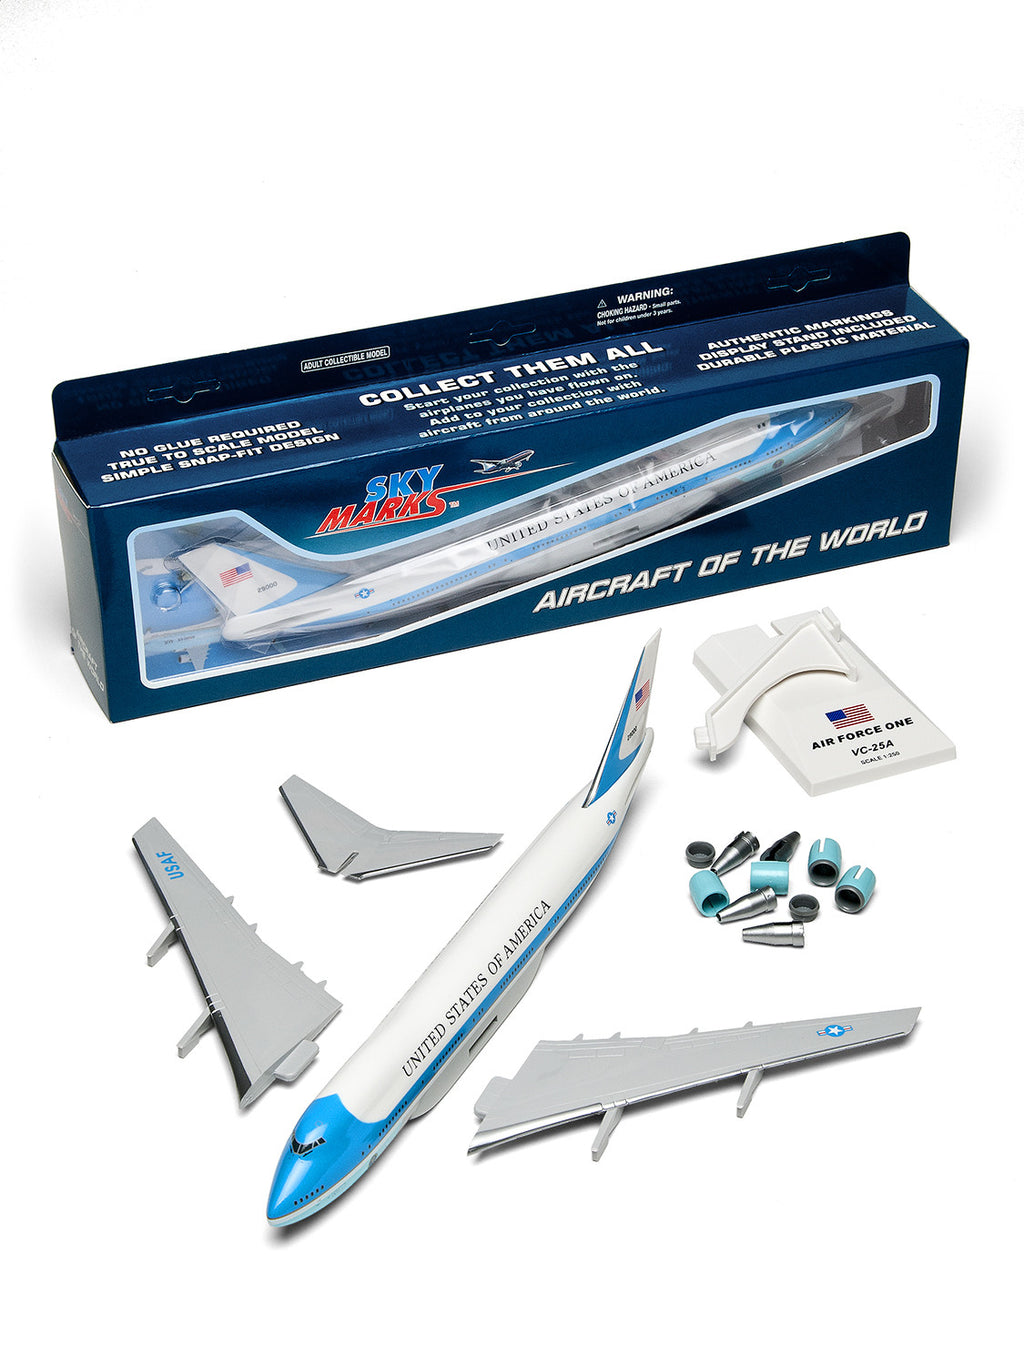 Air Force One Skymark Model Plane